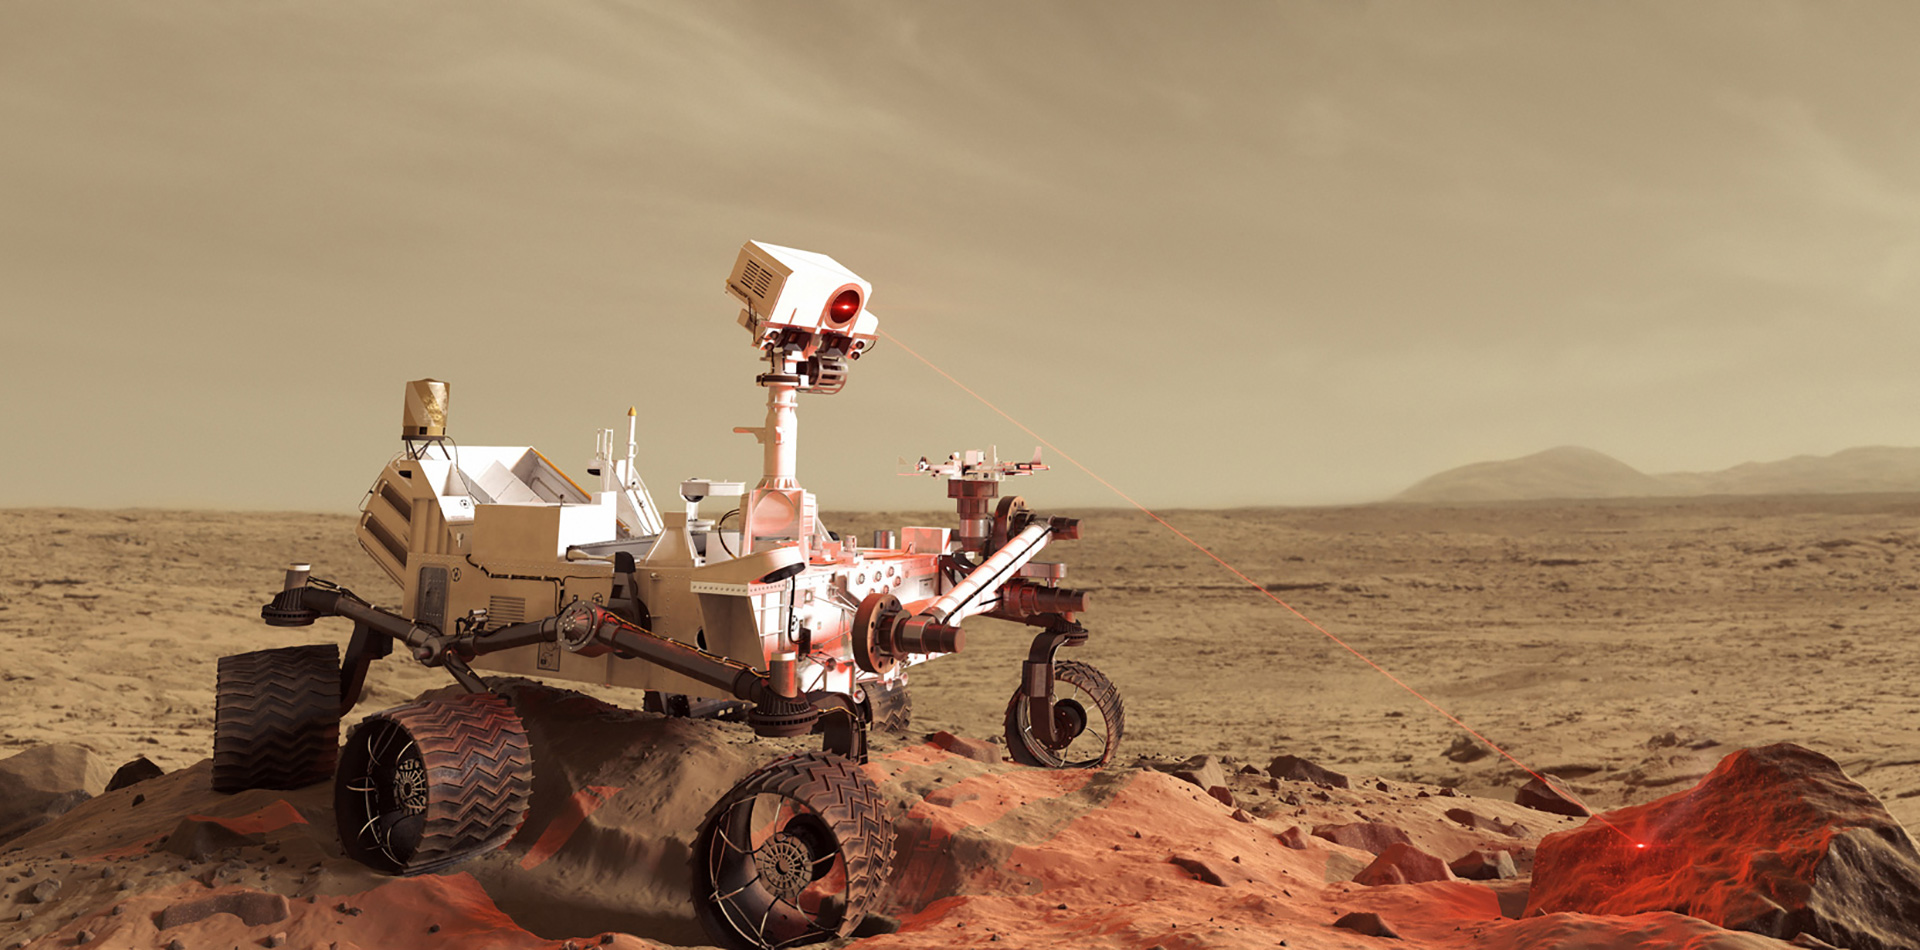 NASA used Siemens PLM Software to Design, Test, Assemble and Simulate Curiosity Mars Rover.